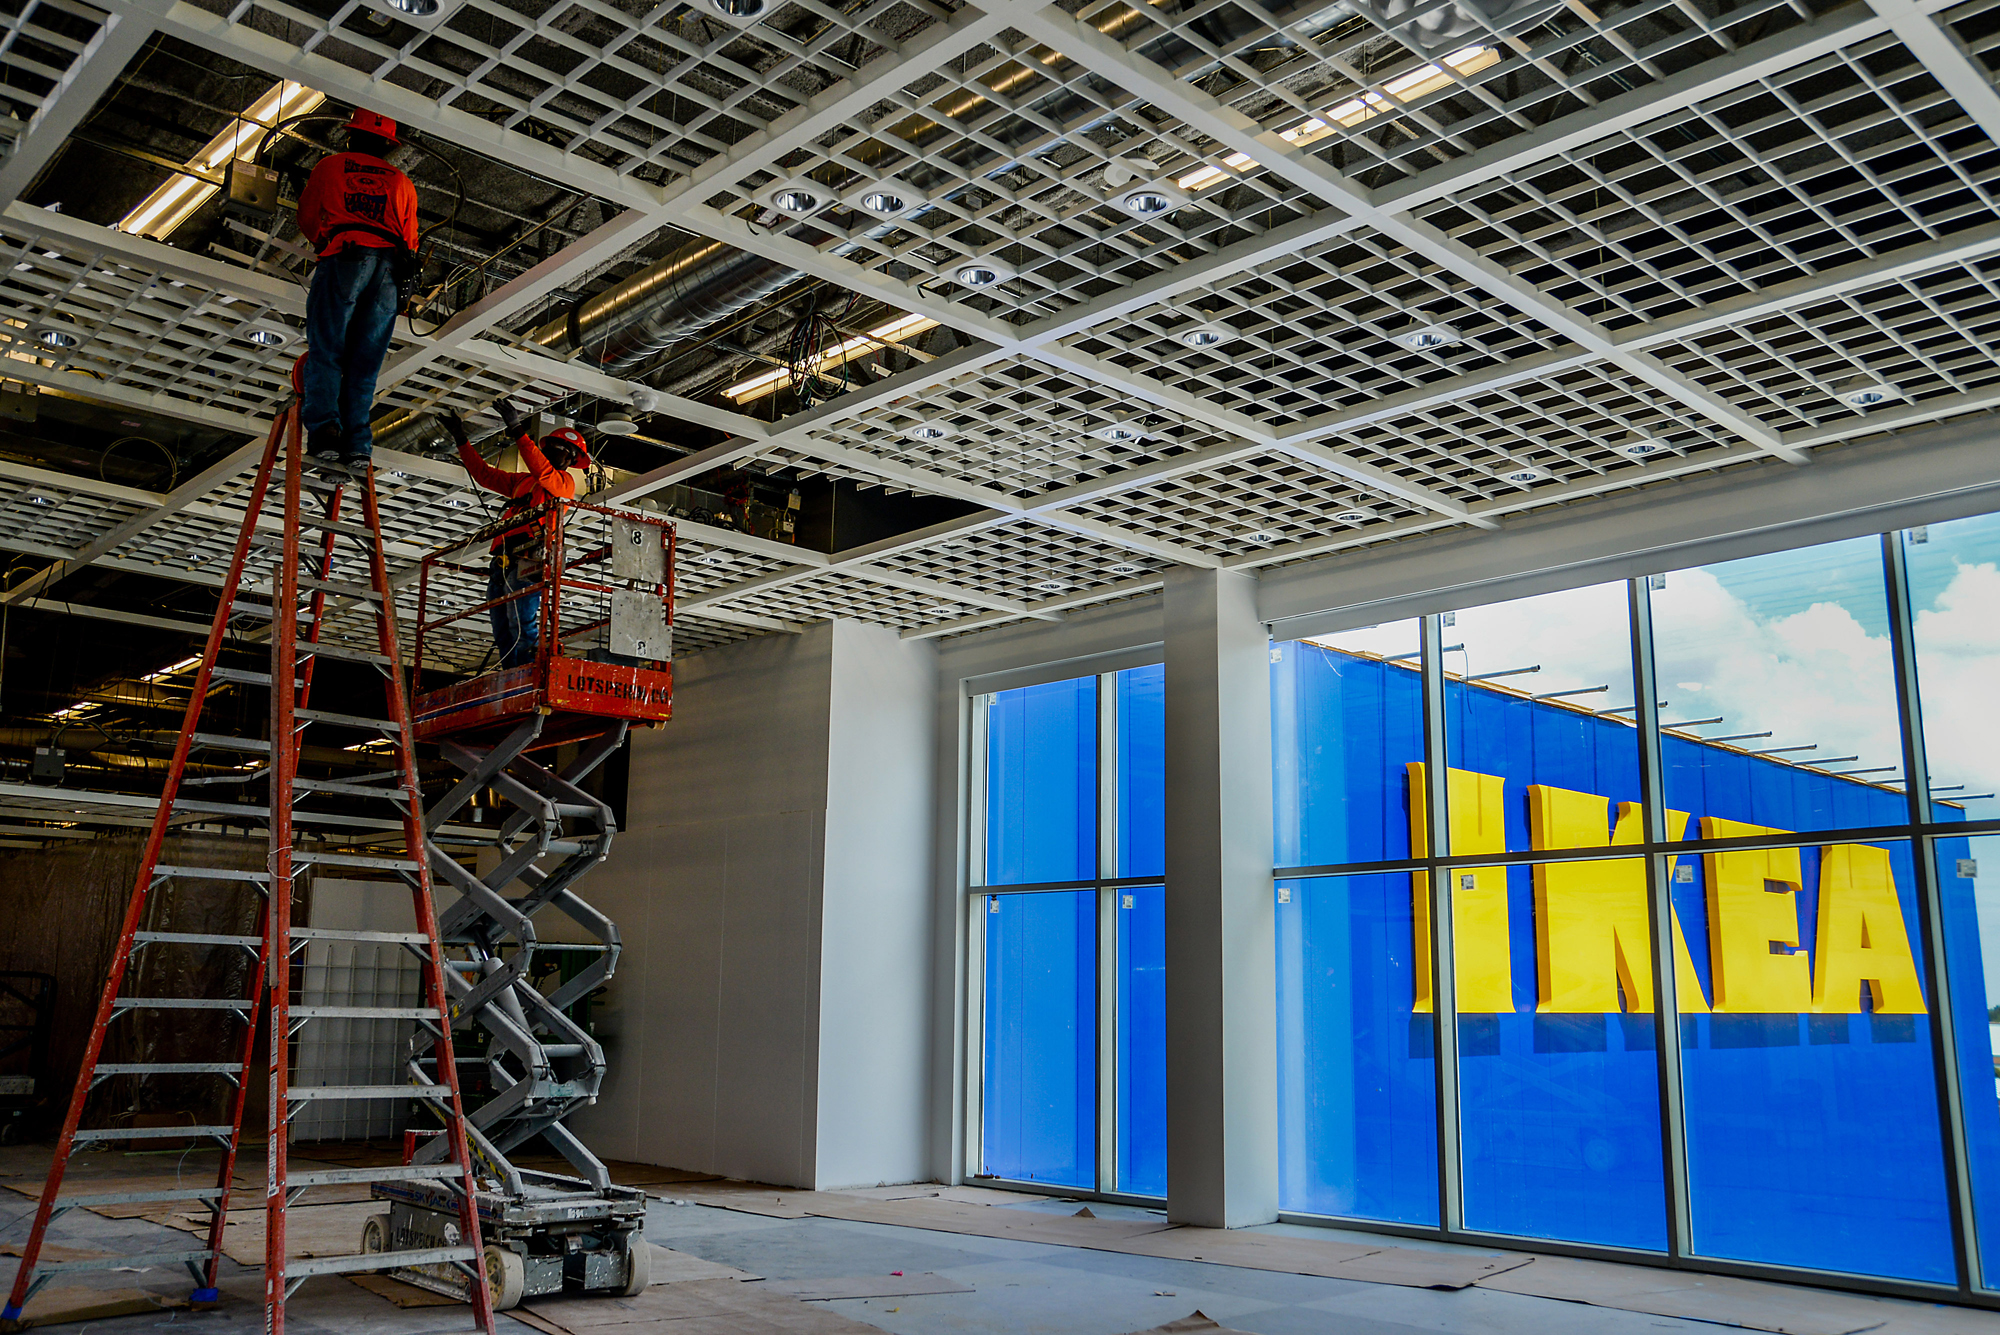 Contractors work on construction of a new IKEA store in Miami, May 20, 2014.